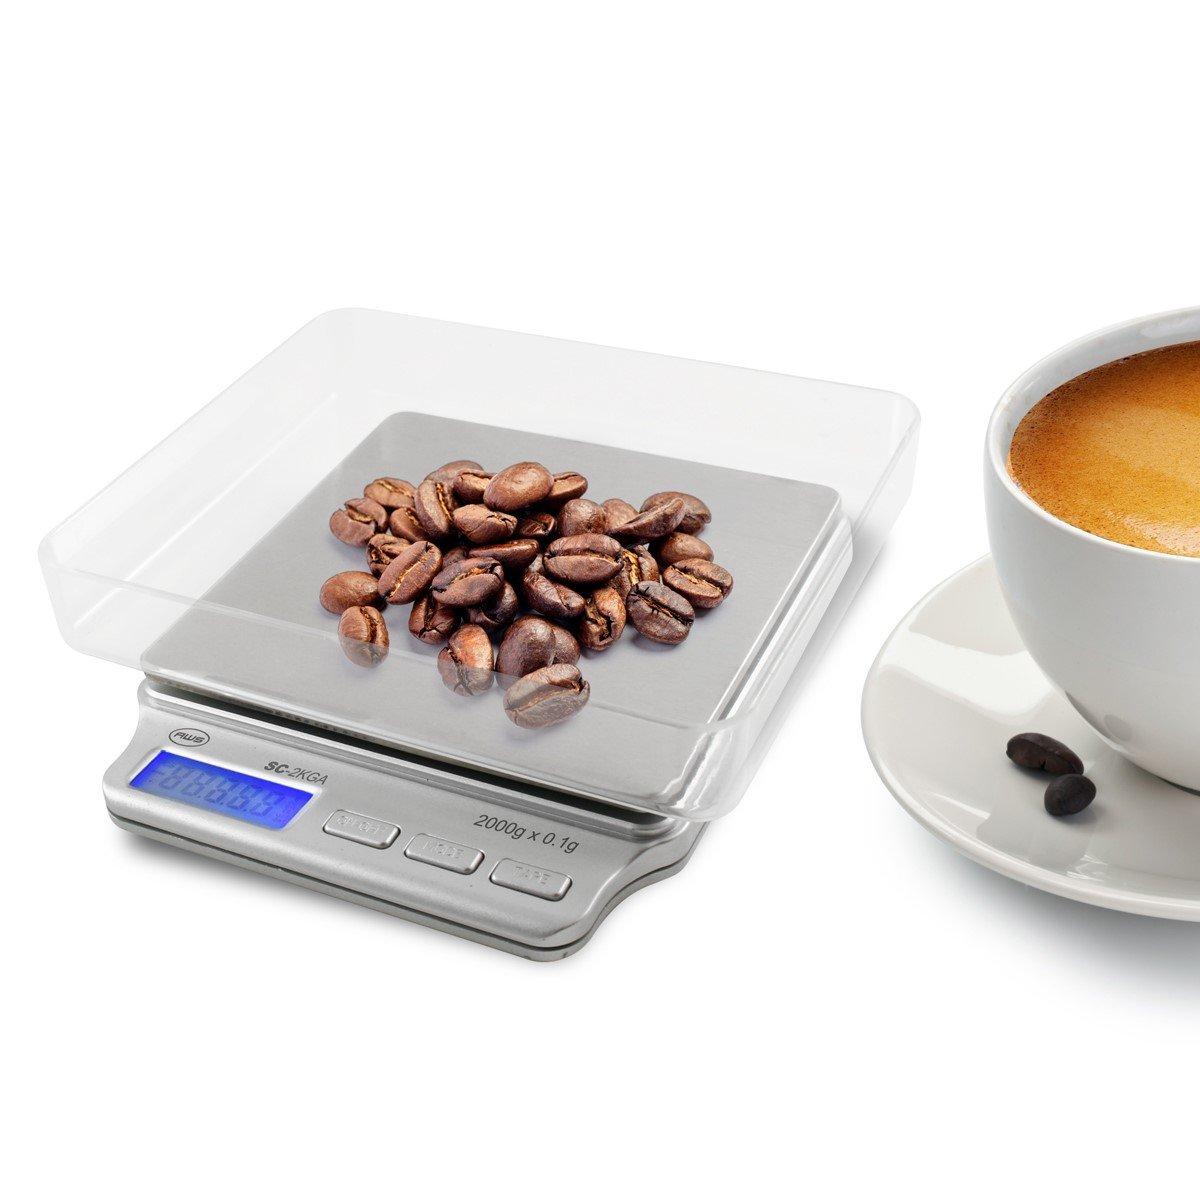 American Weigh Scales SC Series Digital Pocket Weight Scale, Silver best coffee scale